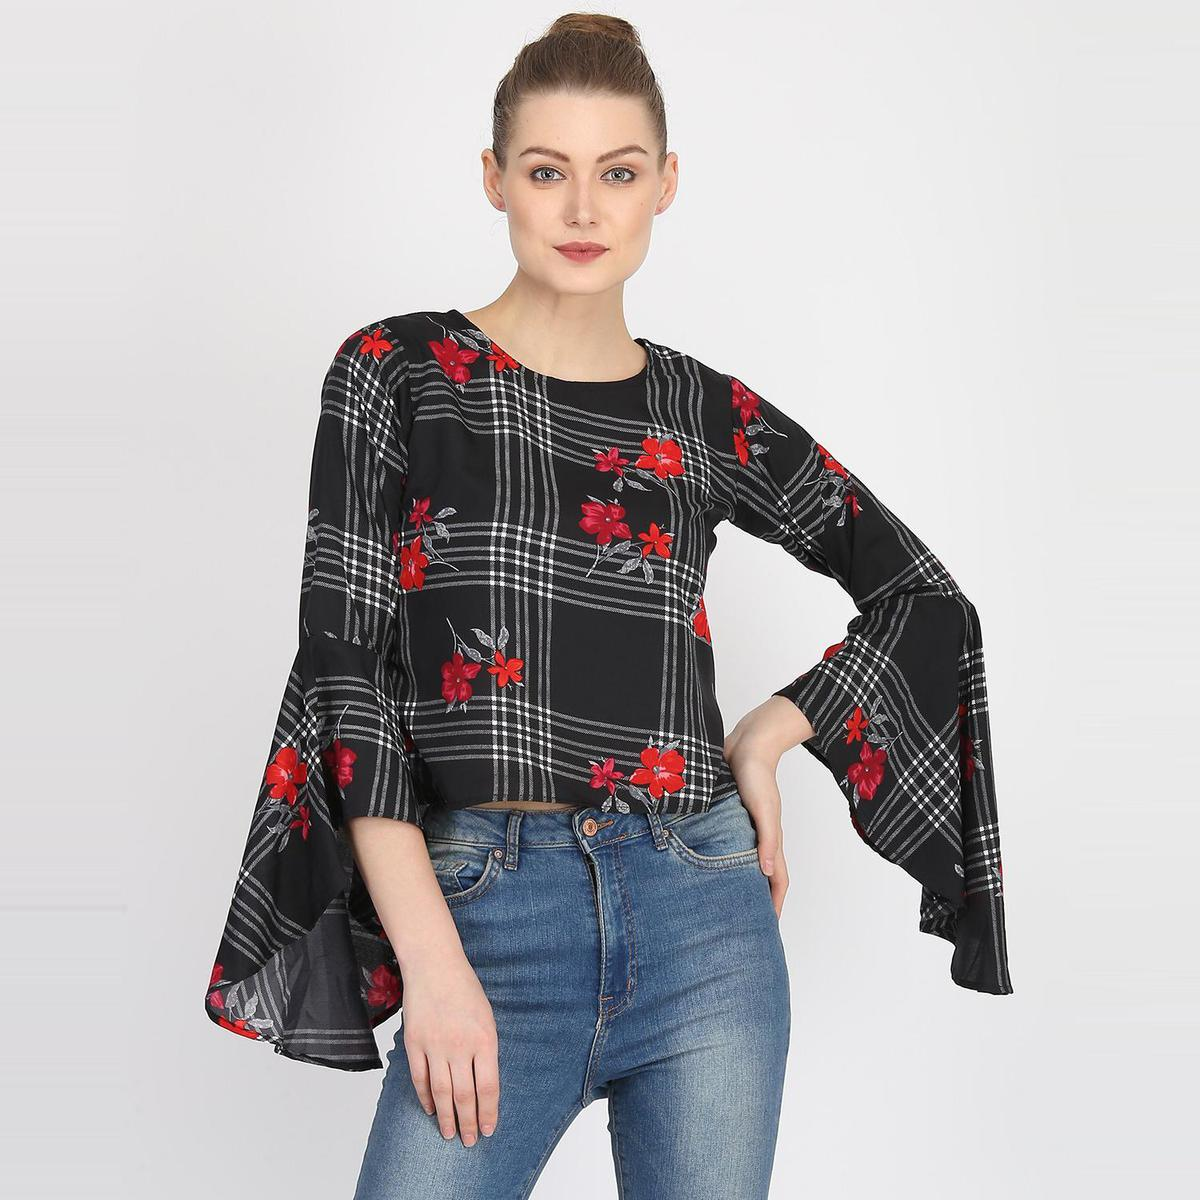 OMADAM - Black Colored Casual Floral-Checked Printed Crepe Top